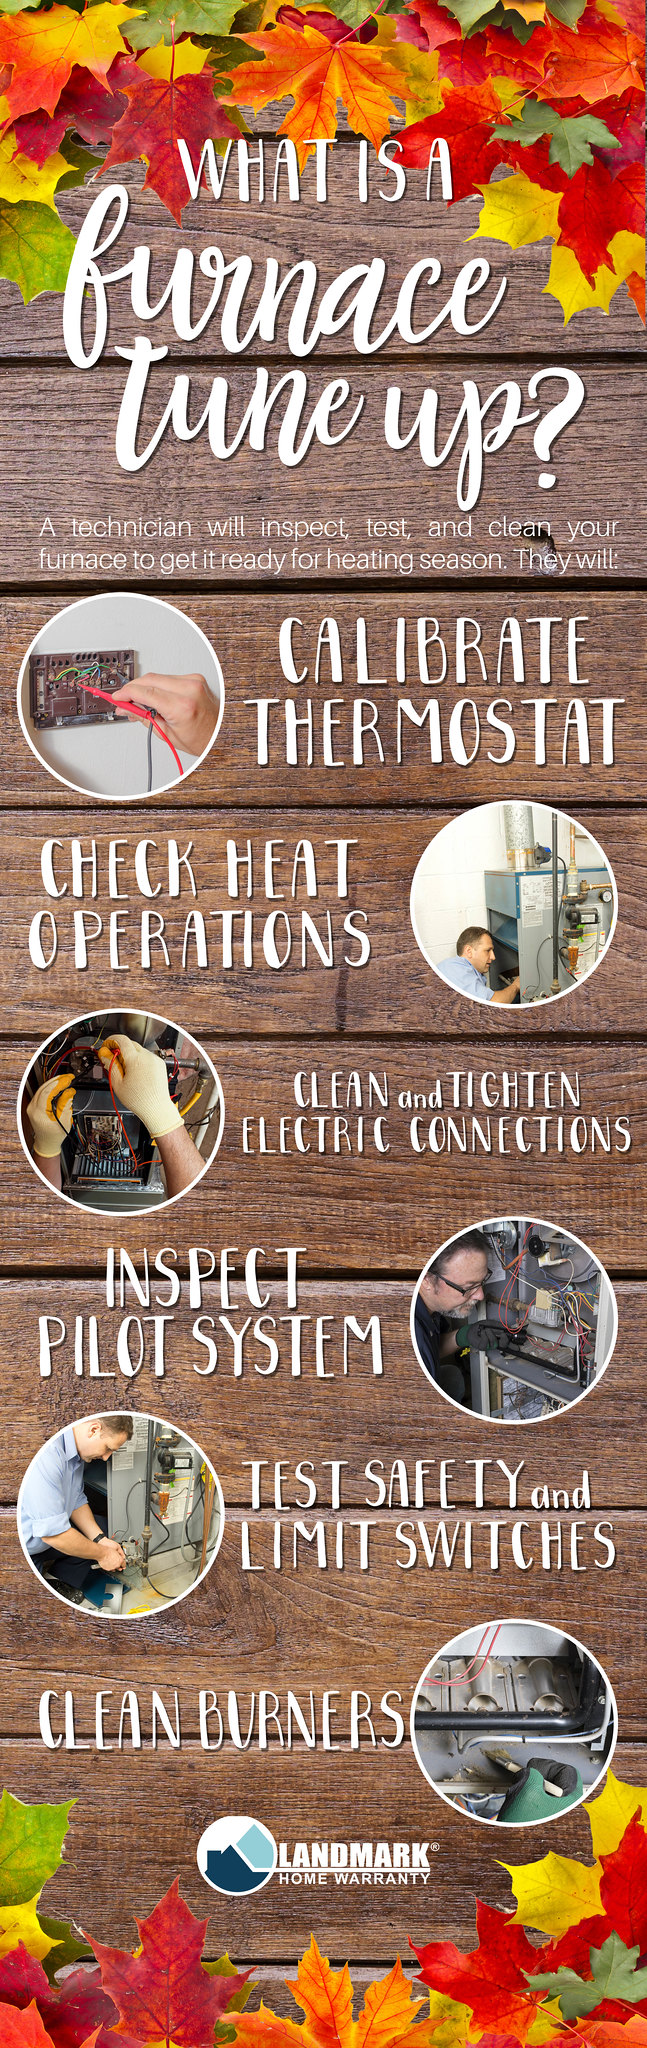 What is a furnace tune up?